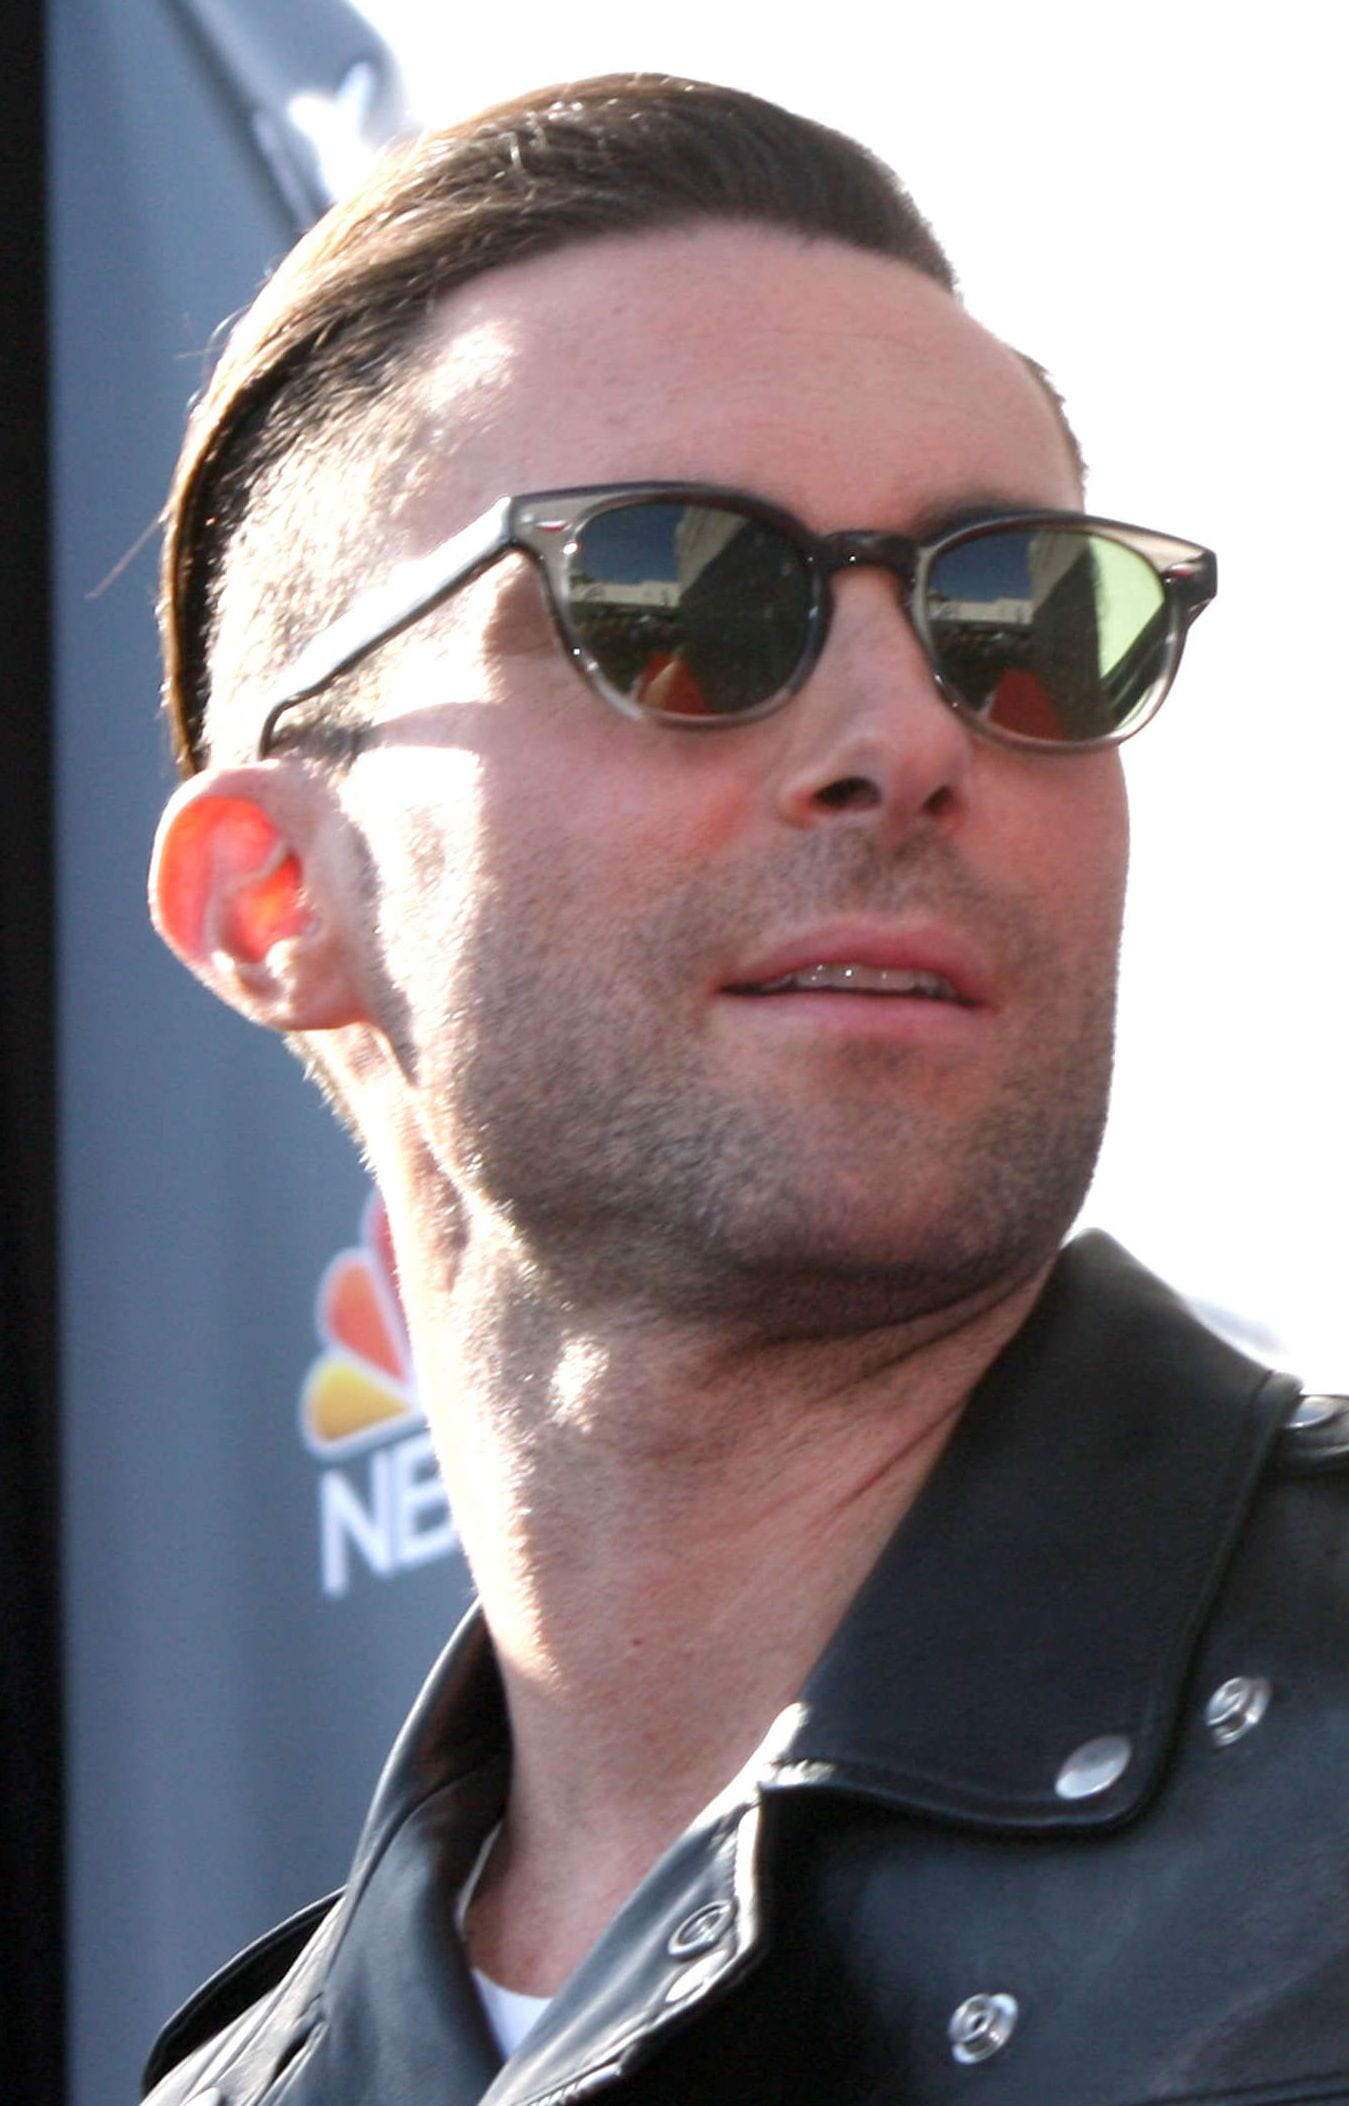 Adam Levine's Disconnected Undercut